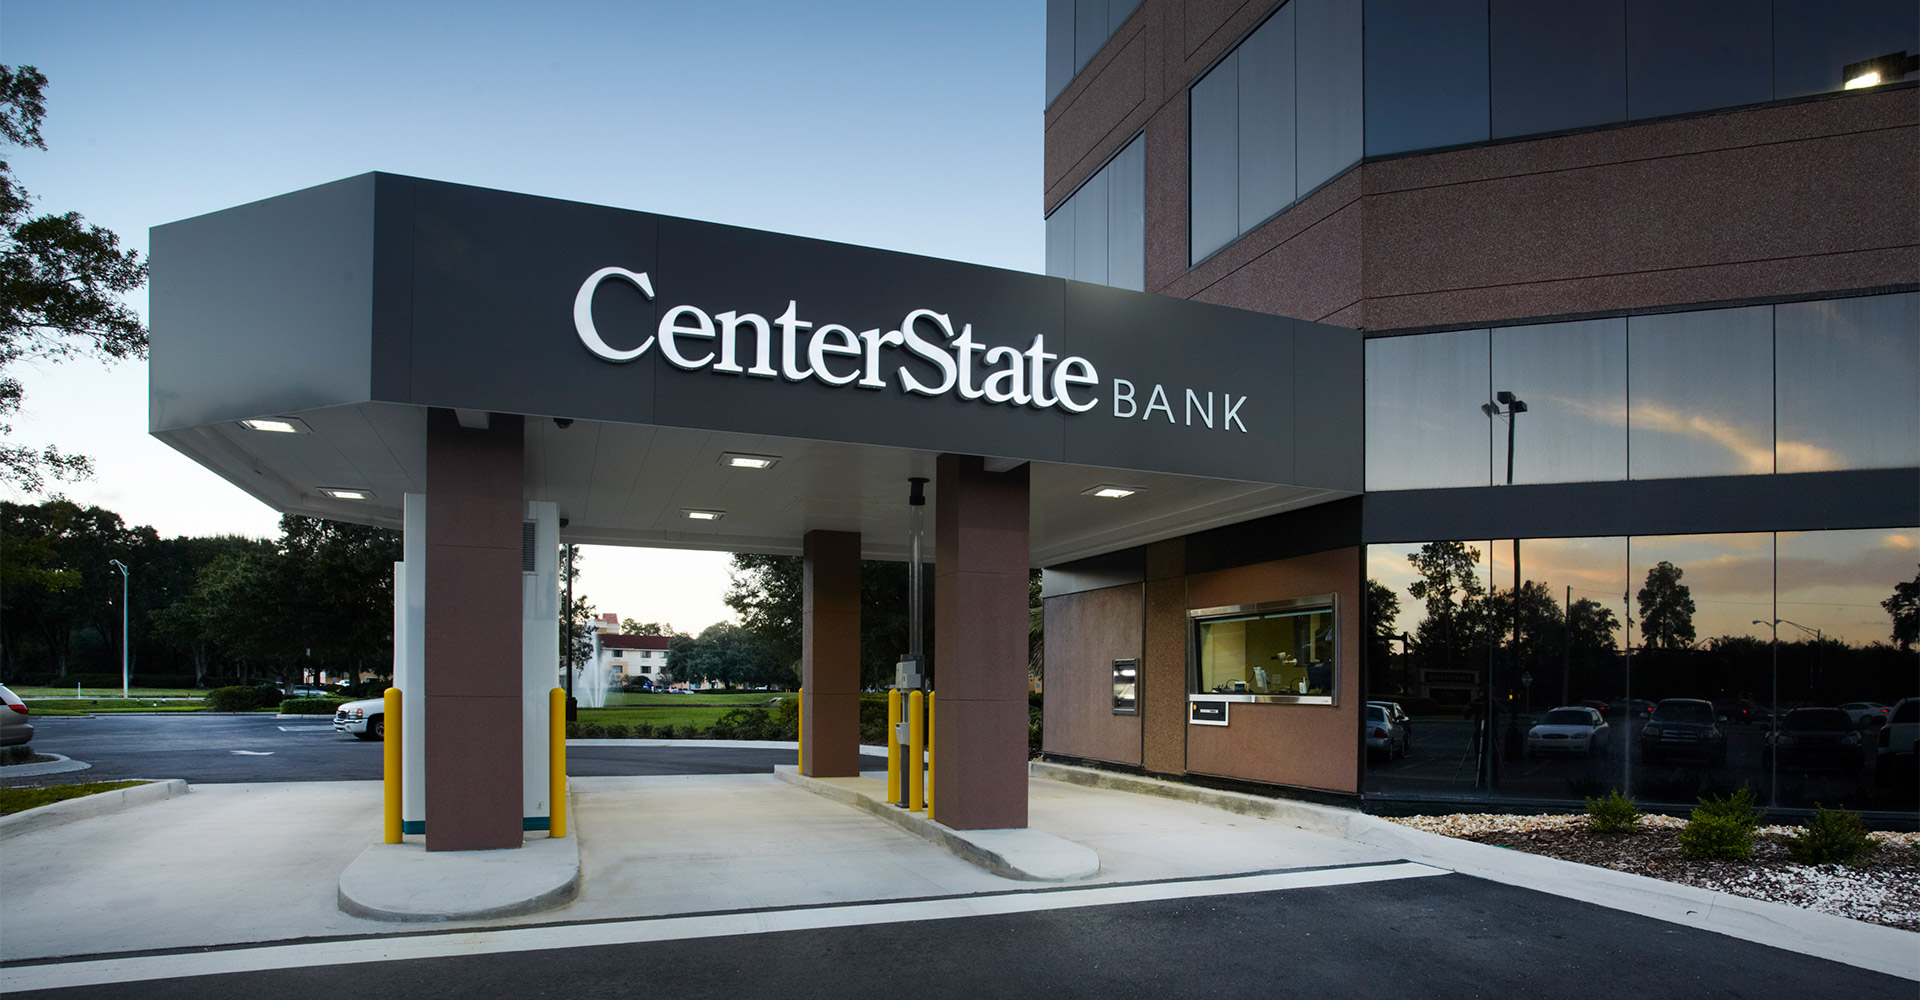 Exterior of CenterState Bank.